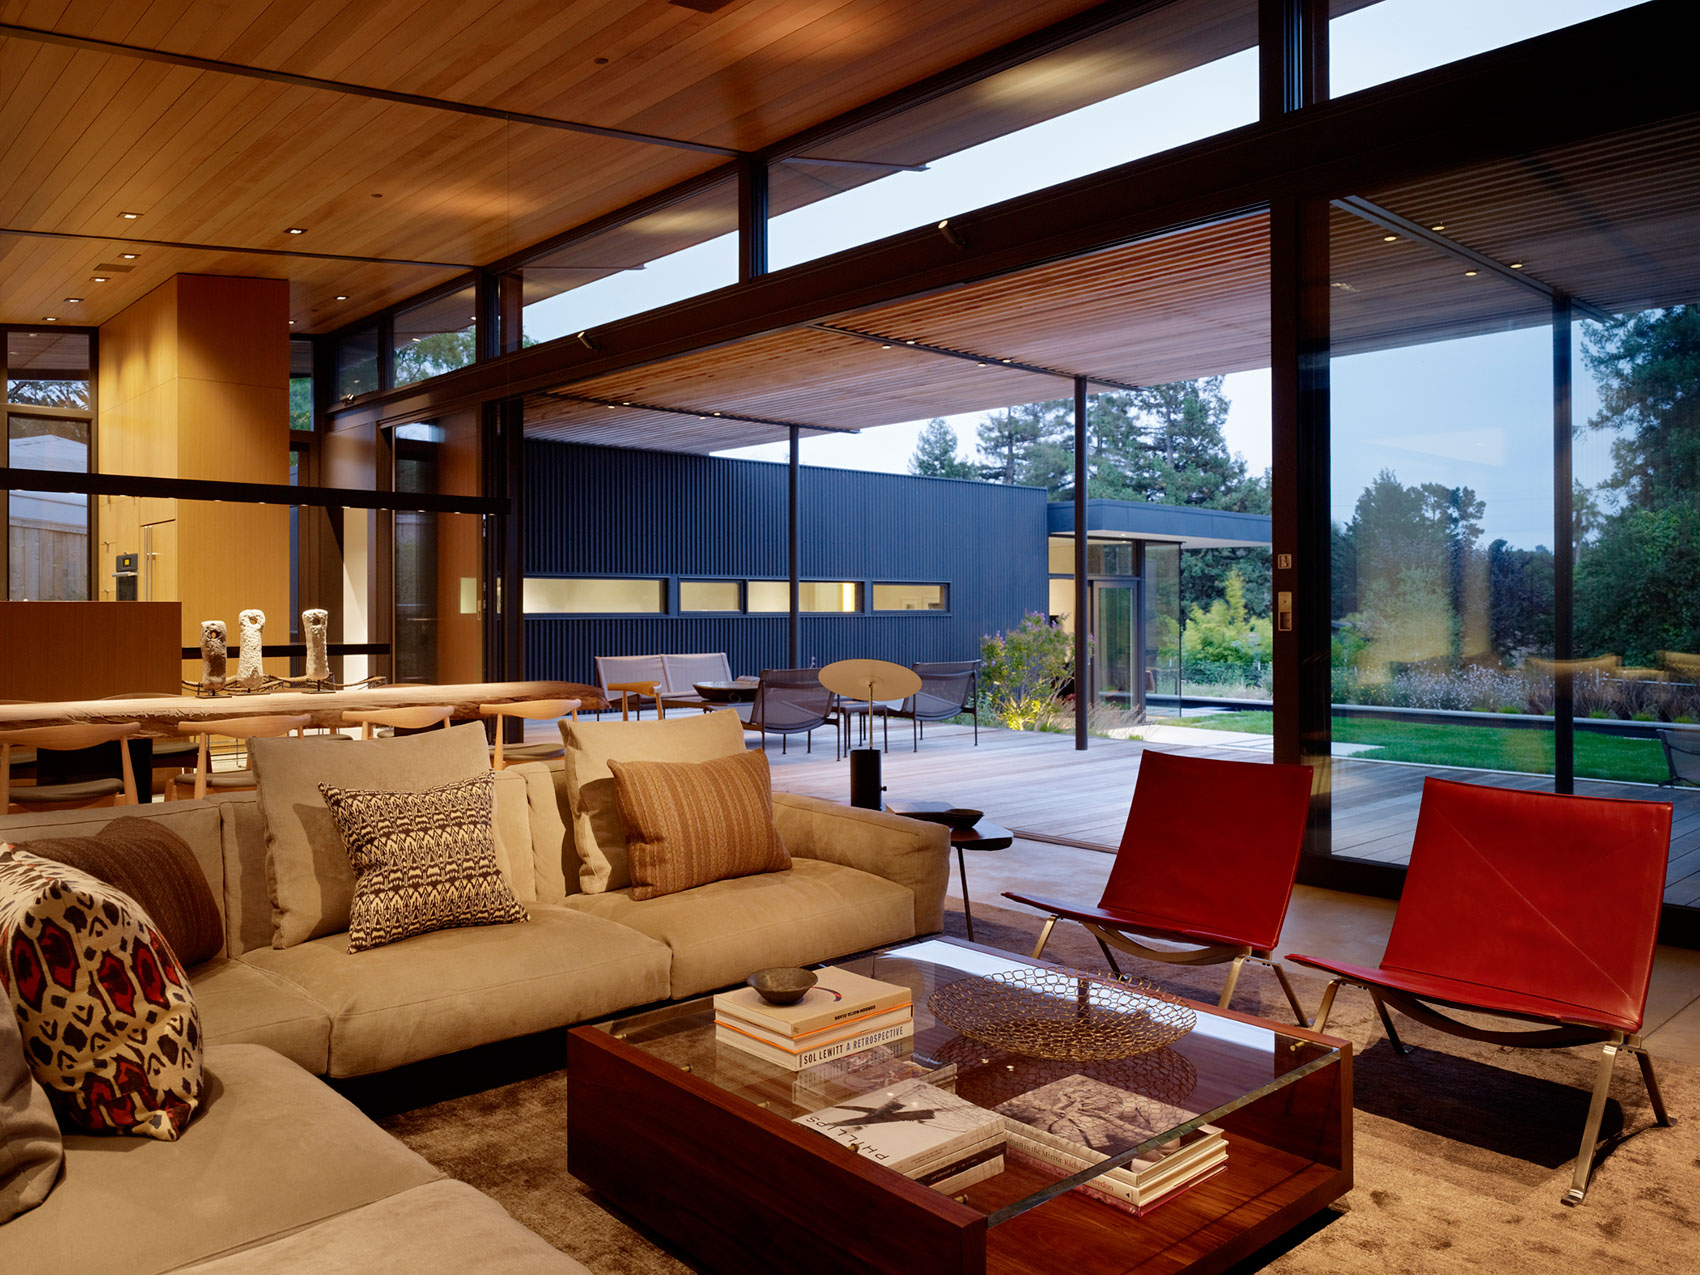 Mill Valley Courtyard Residence by Aidlin Darling Design (13)